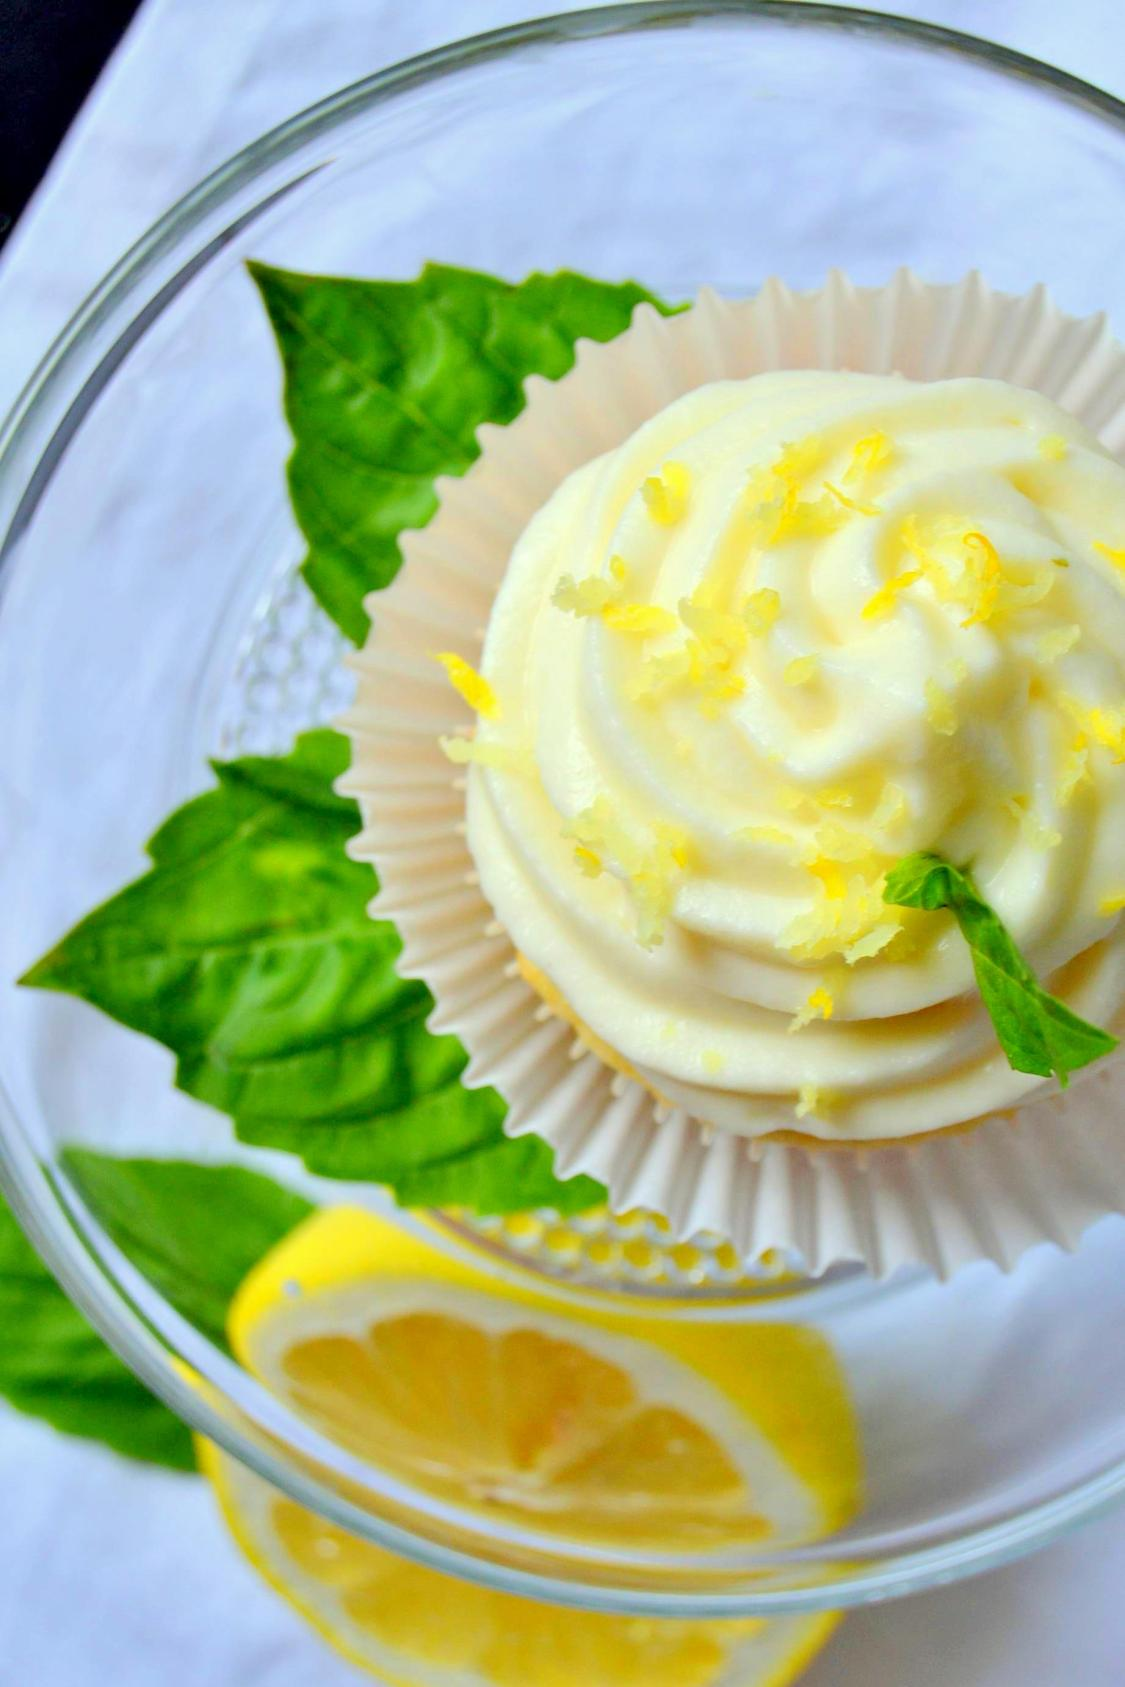 Tattooed Martha - Lemon Cupcakes with Basil Whipped Cream Frosting (8)